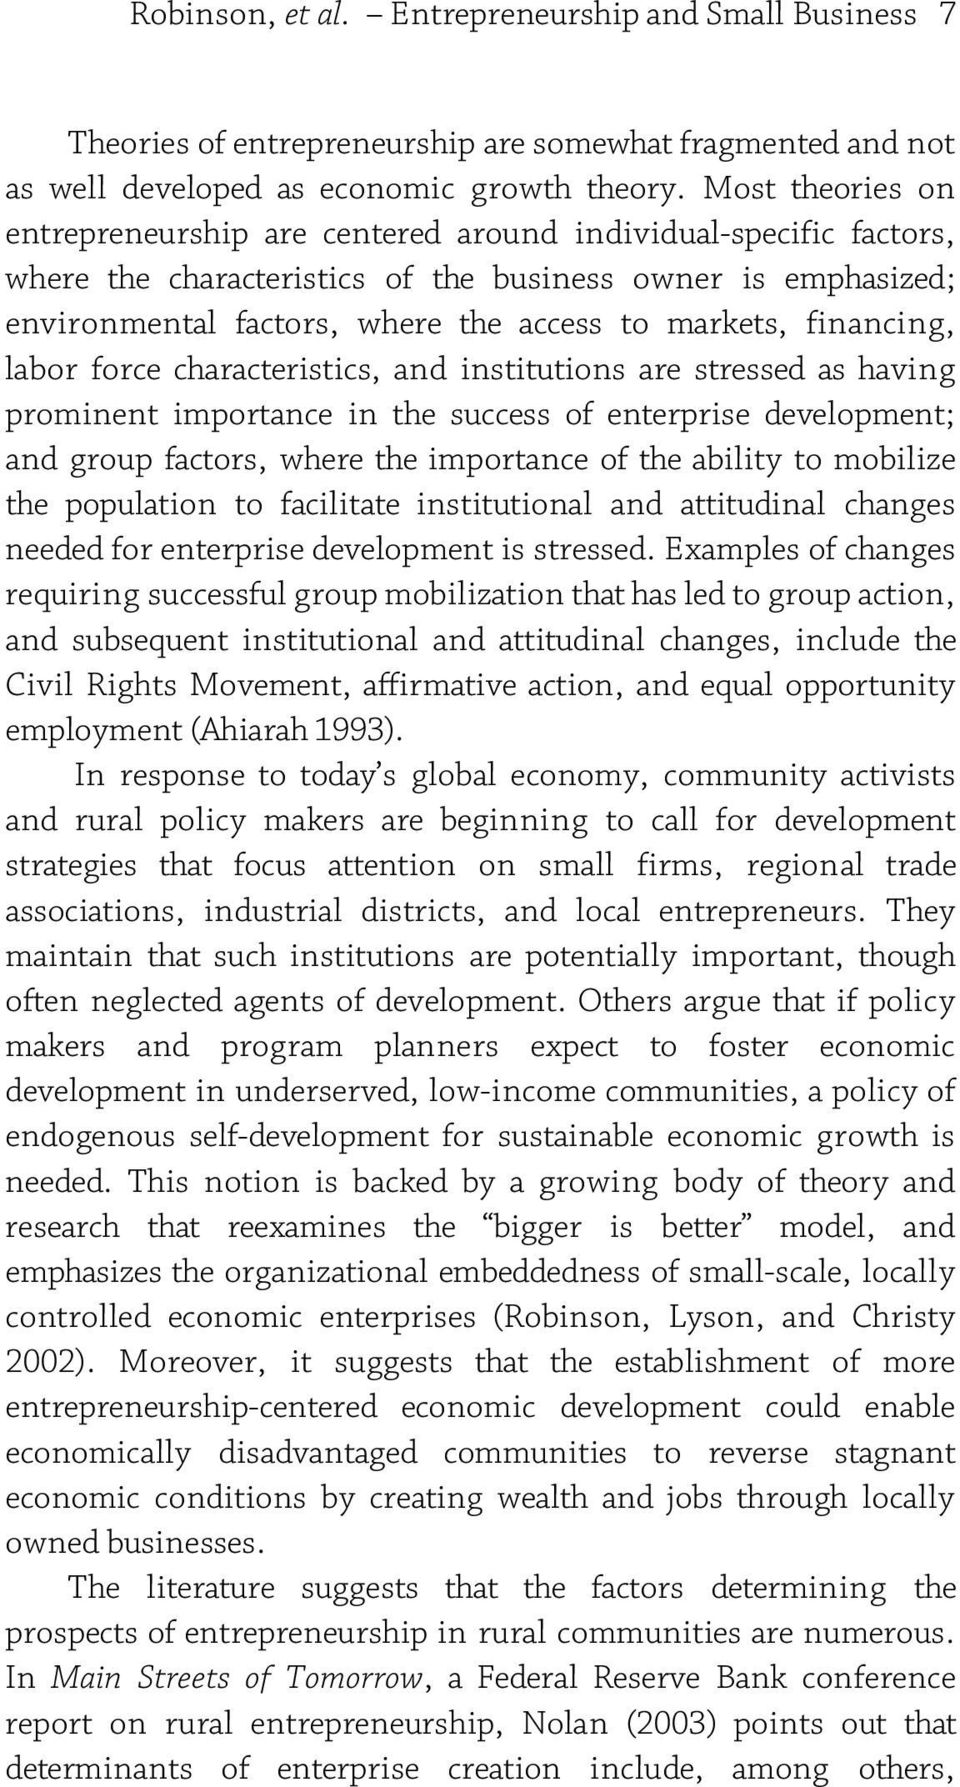 financing, labor force characteristics, and institutions are stressed as having prominent importance in the success of enterprise development; and group factors, where the importance of the ability